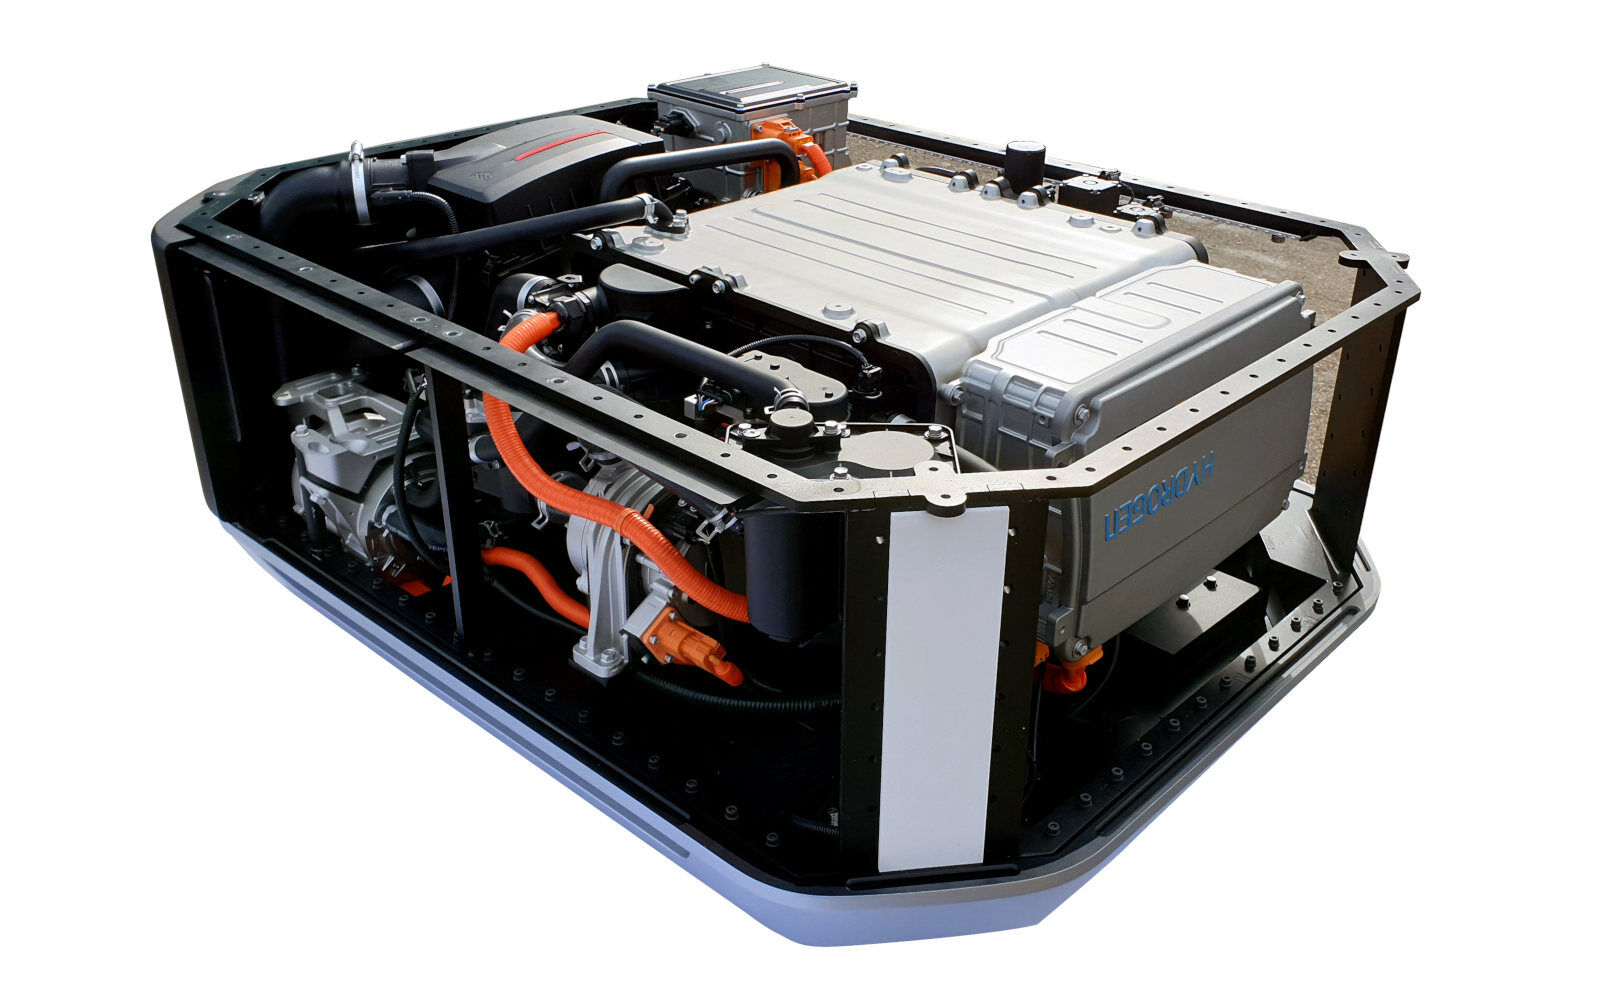 csm_hyundai-export-of-fuel-cell-system-02-1610_116e92fa58